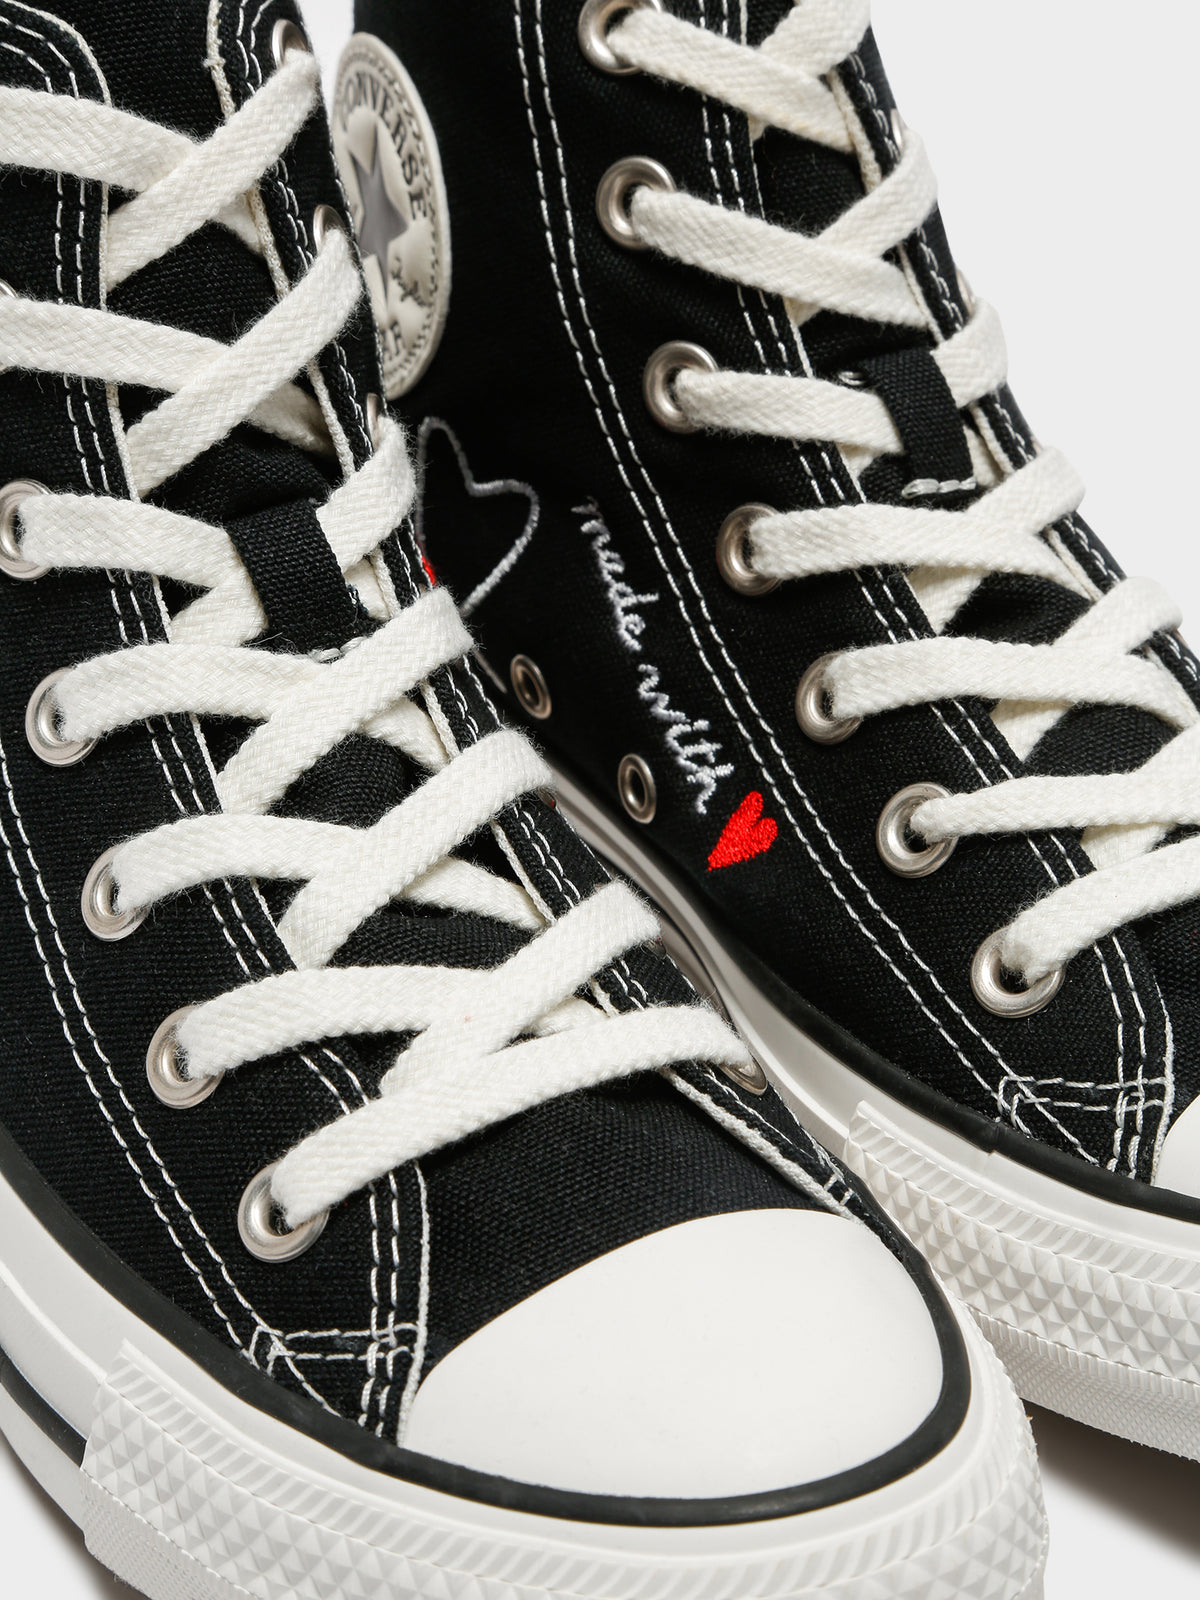 Unisex Made With Love Chuck Taylor All Star High Top Sneakers in Black